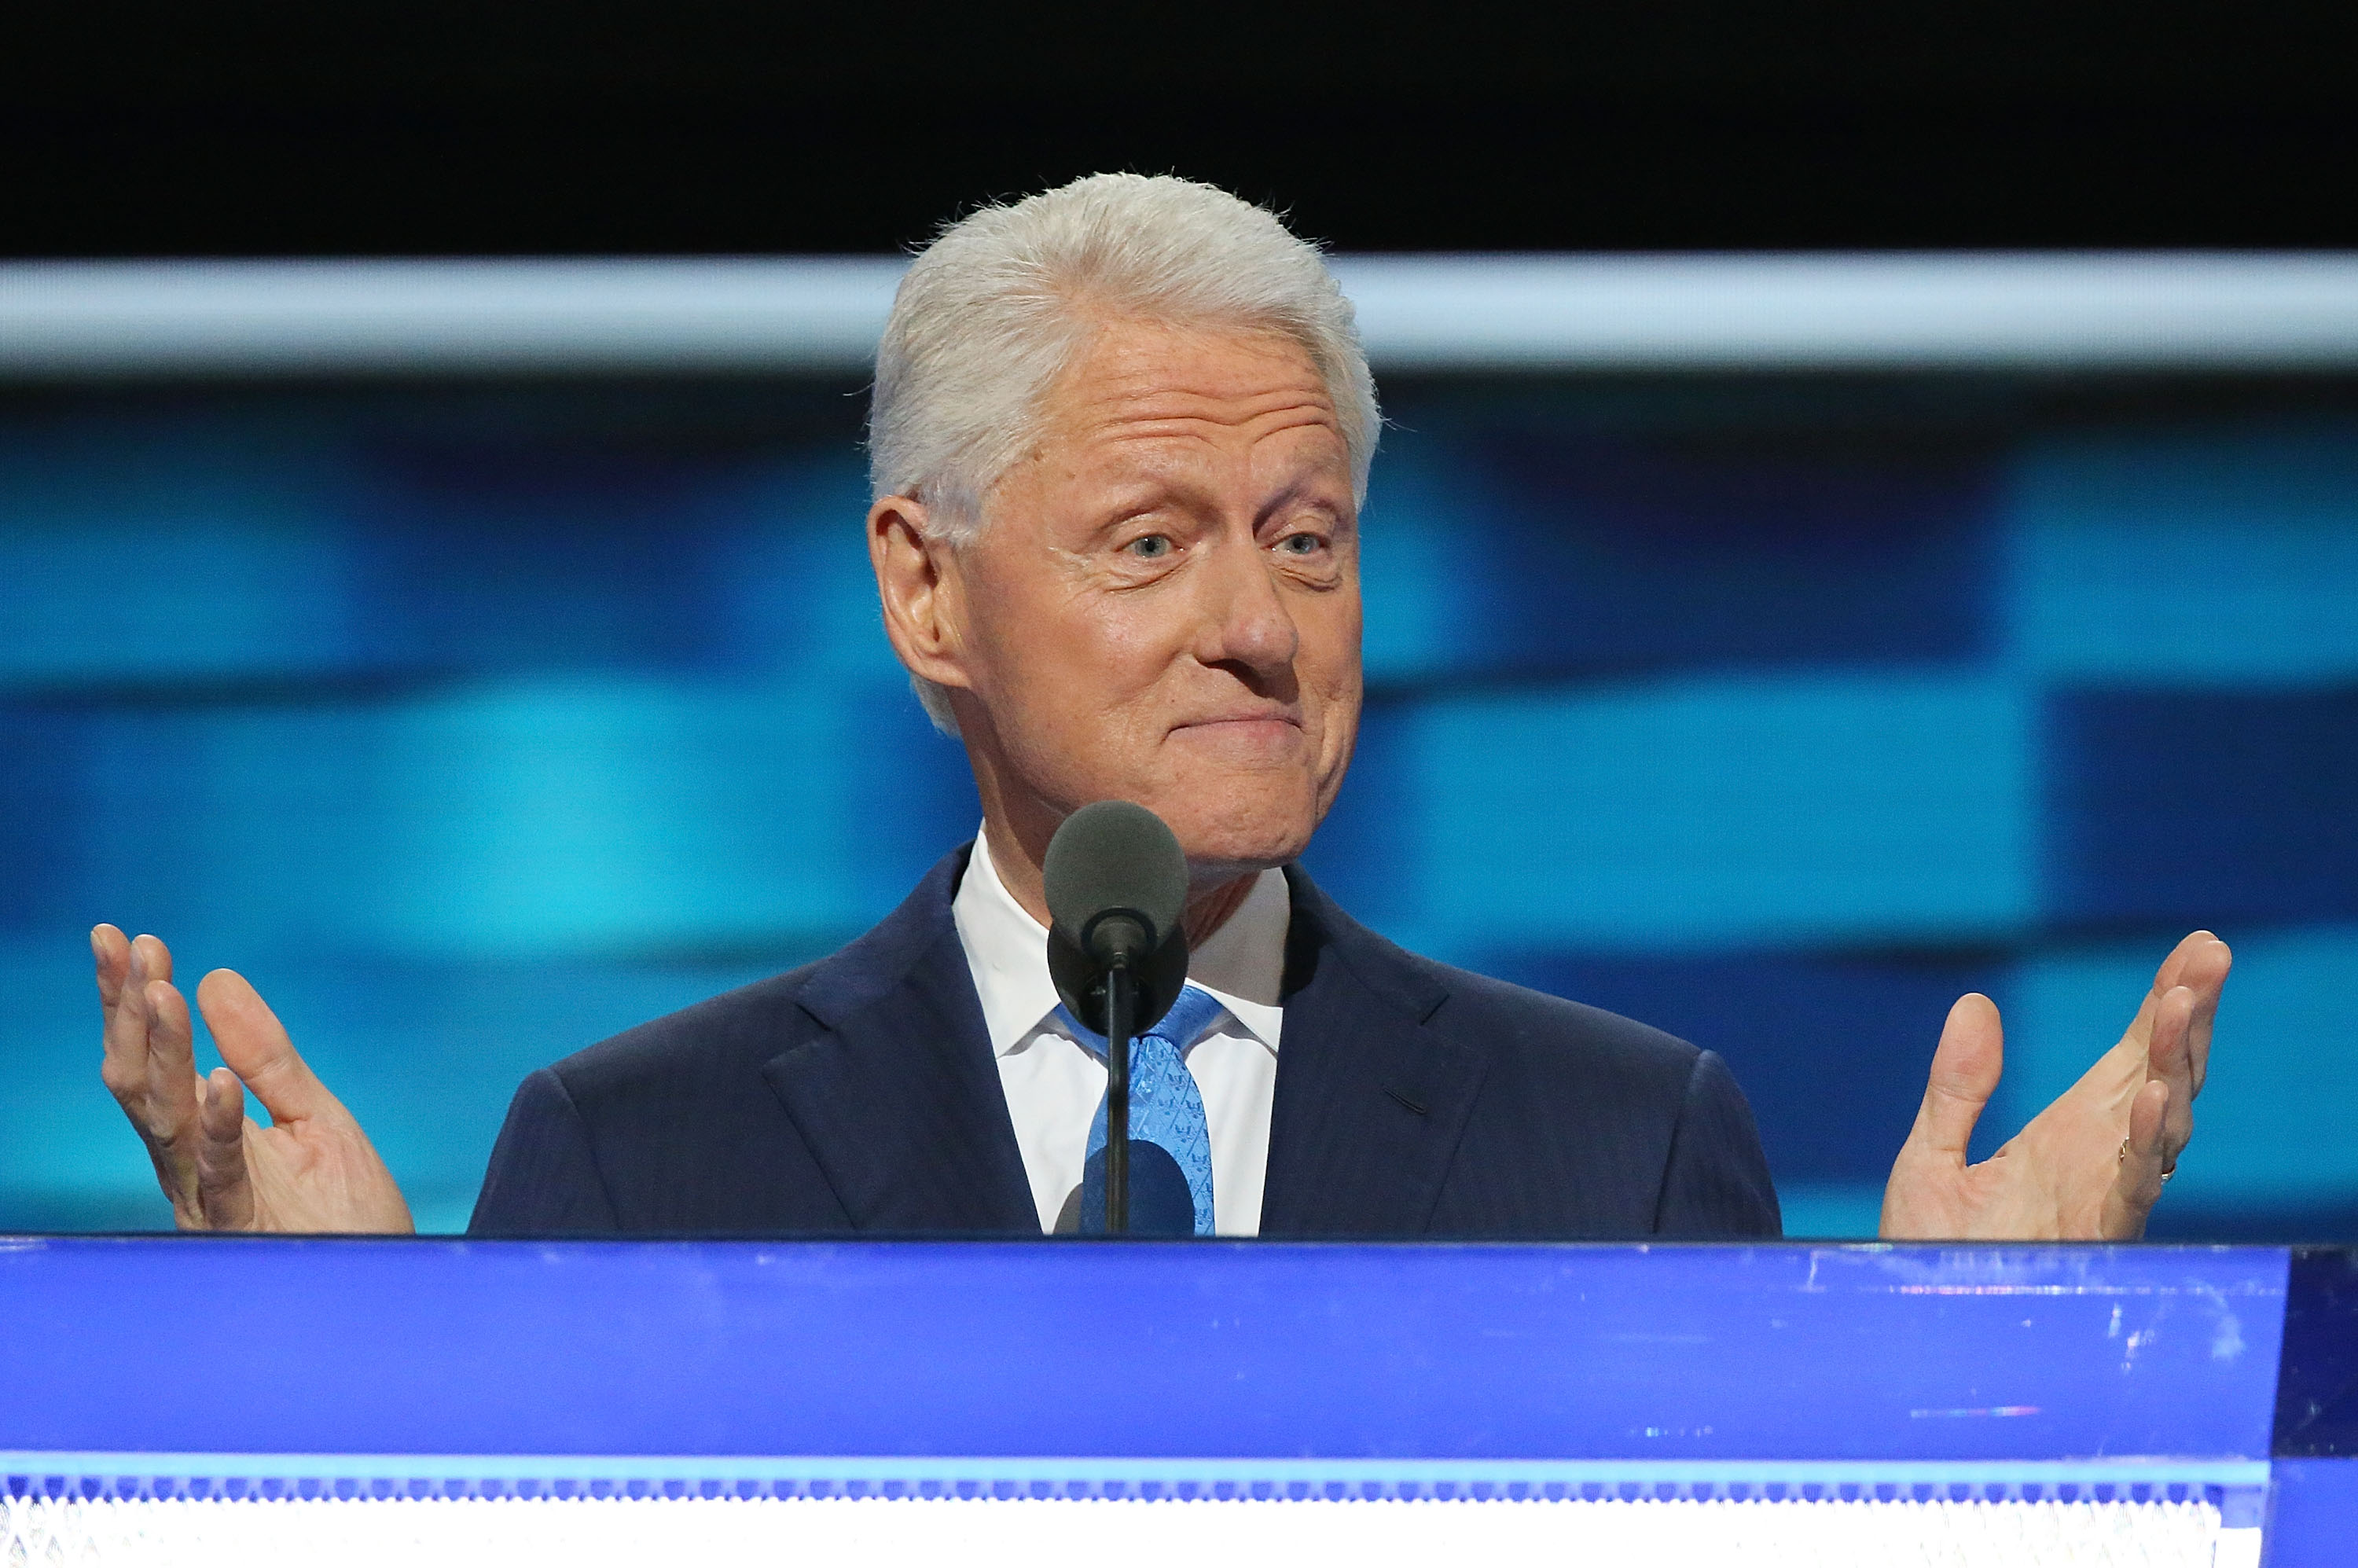 Former U.S. President Bill Clinton delivers remarks on the second day of the 2016 Democratic National Convention at Wells Fargo Center in Philadelphia on July 26, 2016.